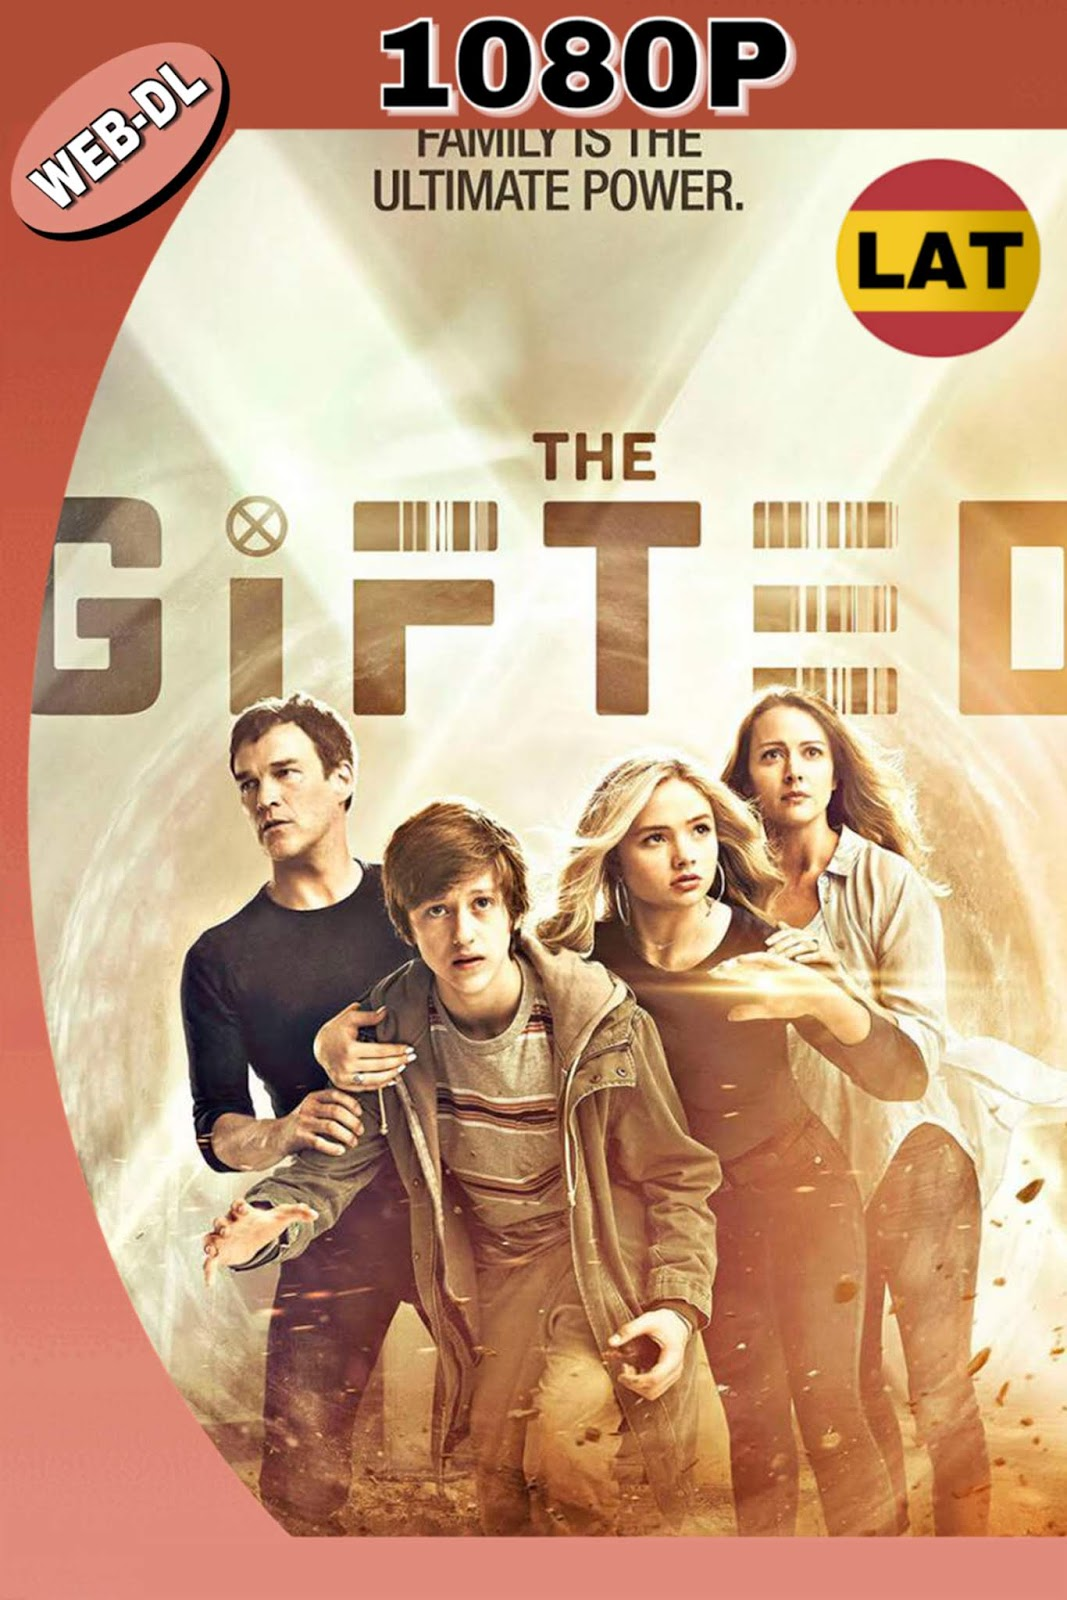 THE GIFTED 2017 TEMPORADA 1 AMZN WEBDL 1080P 23GB.mkv